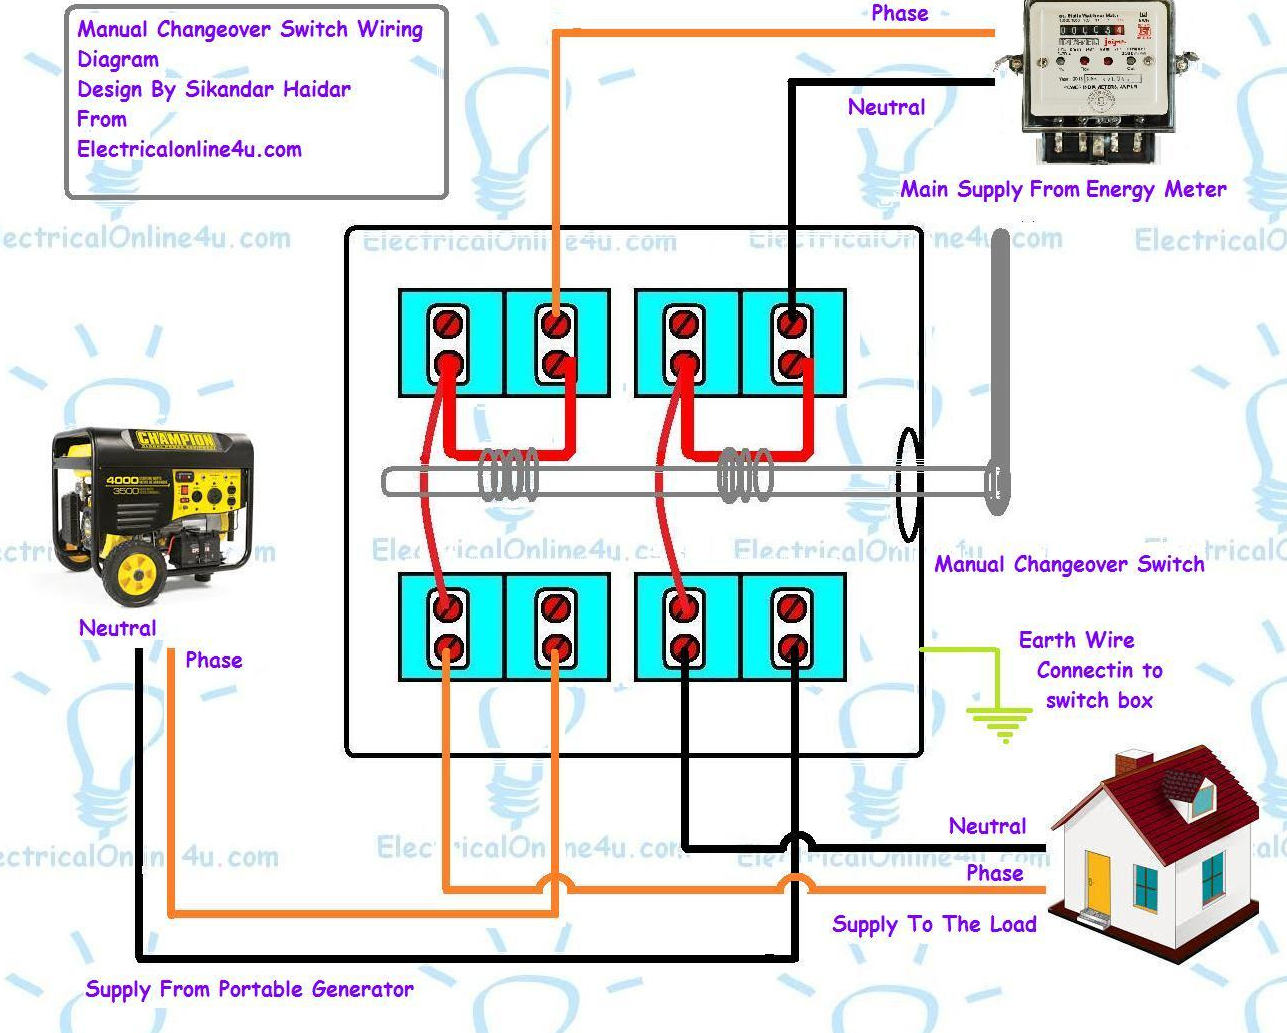 Manual Changeover Switch Wiring Diagram For Portable Generator Hallway Light